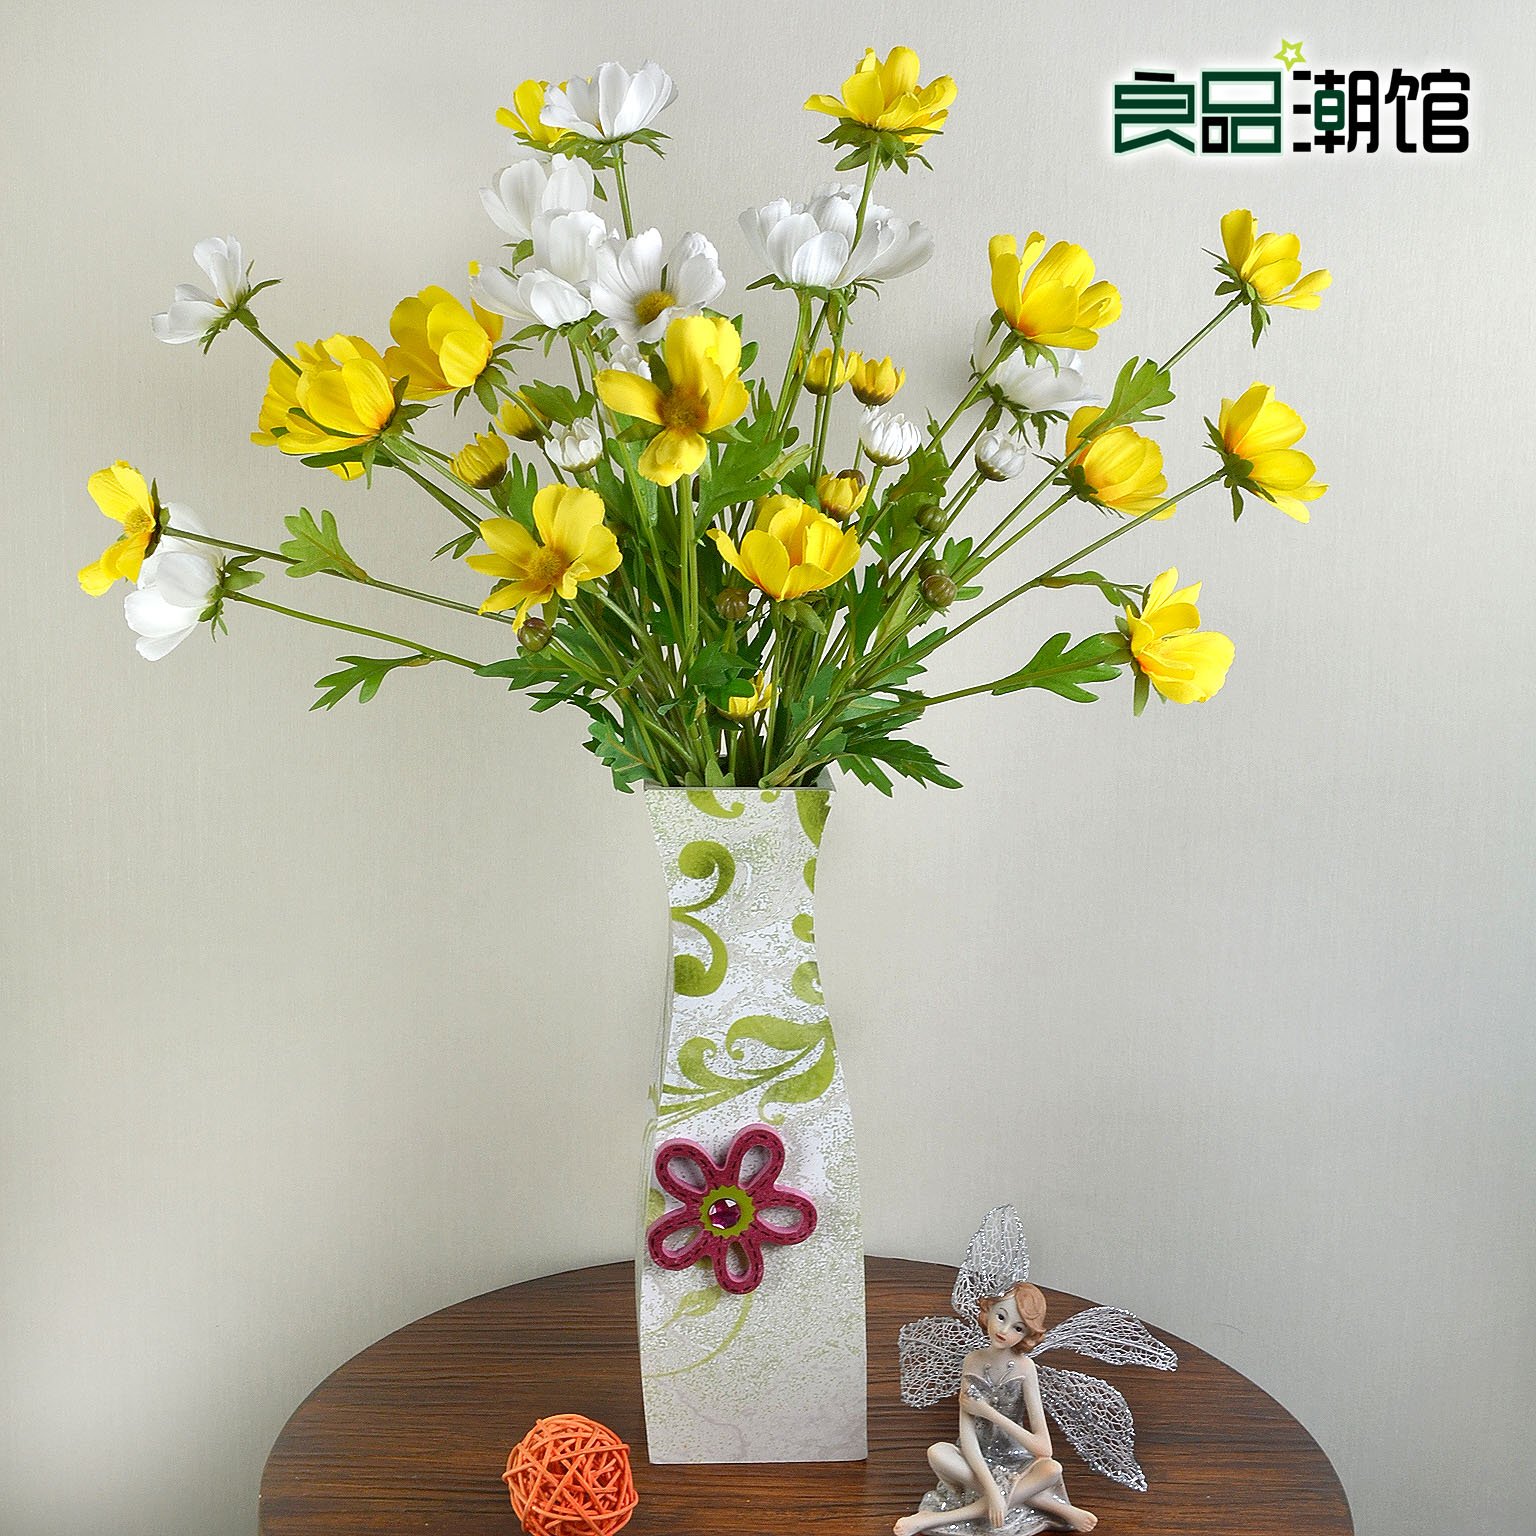 China Big Flower Decor China Big Flower Decor Shopping Guide At